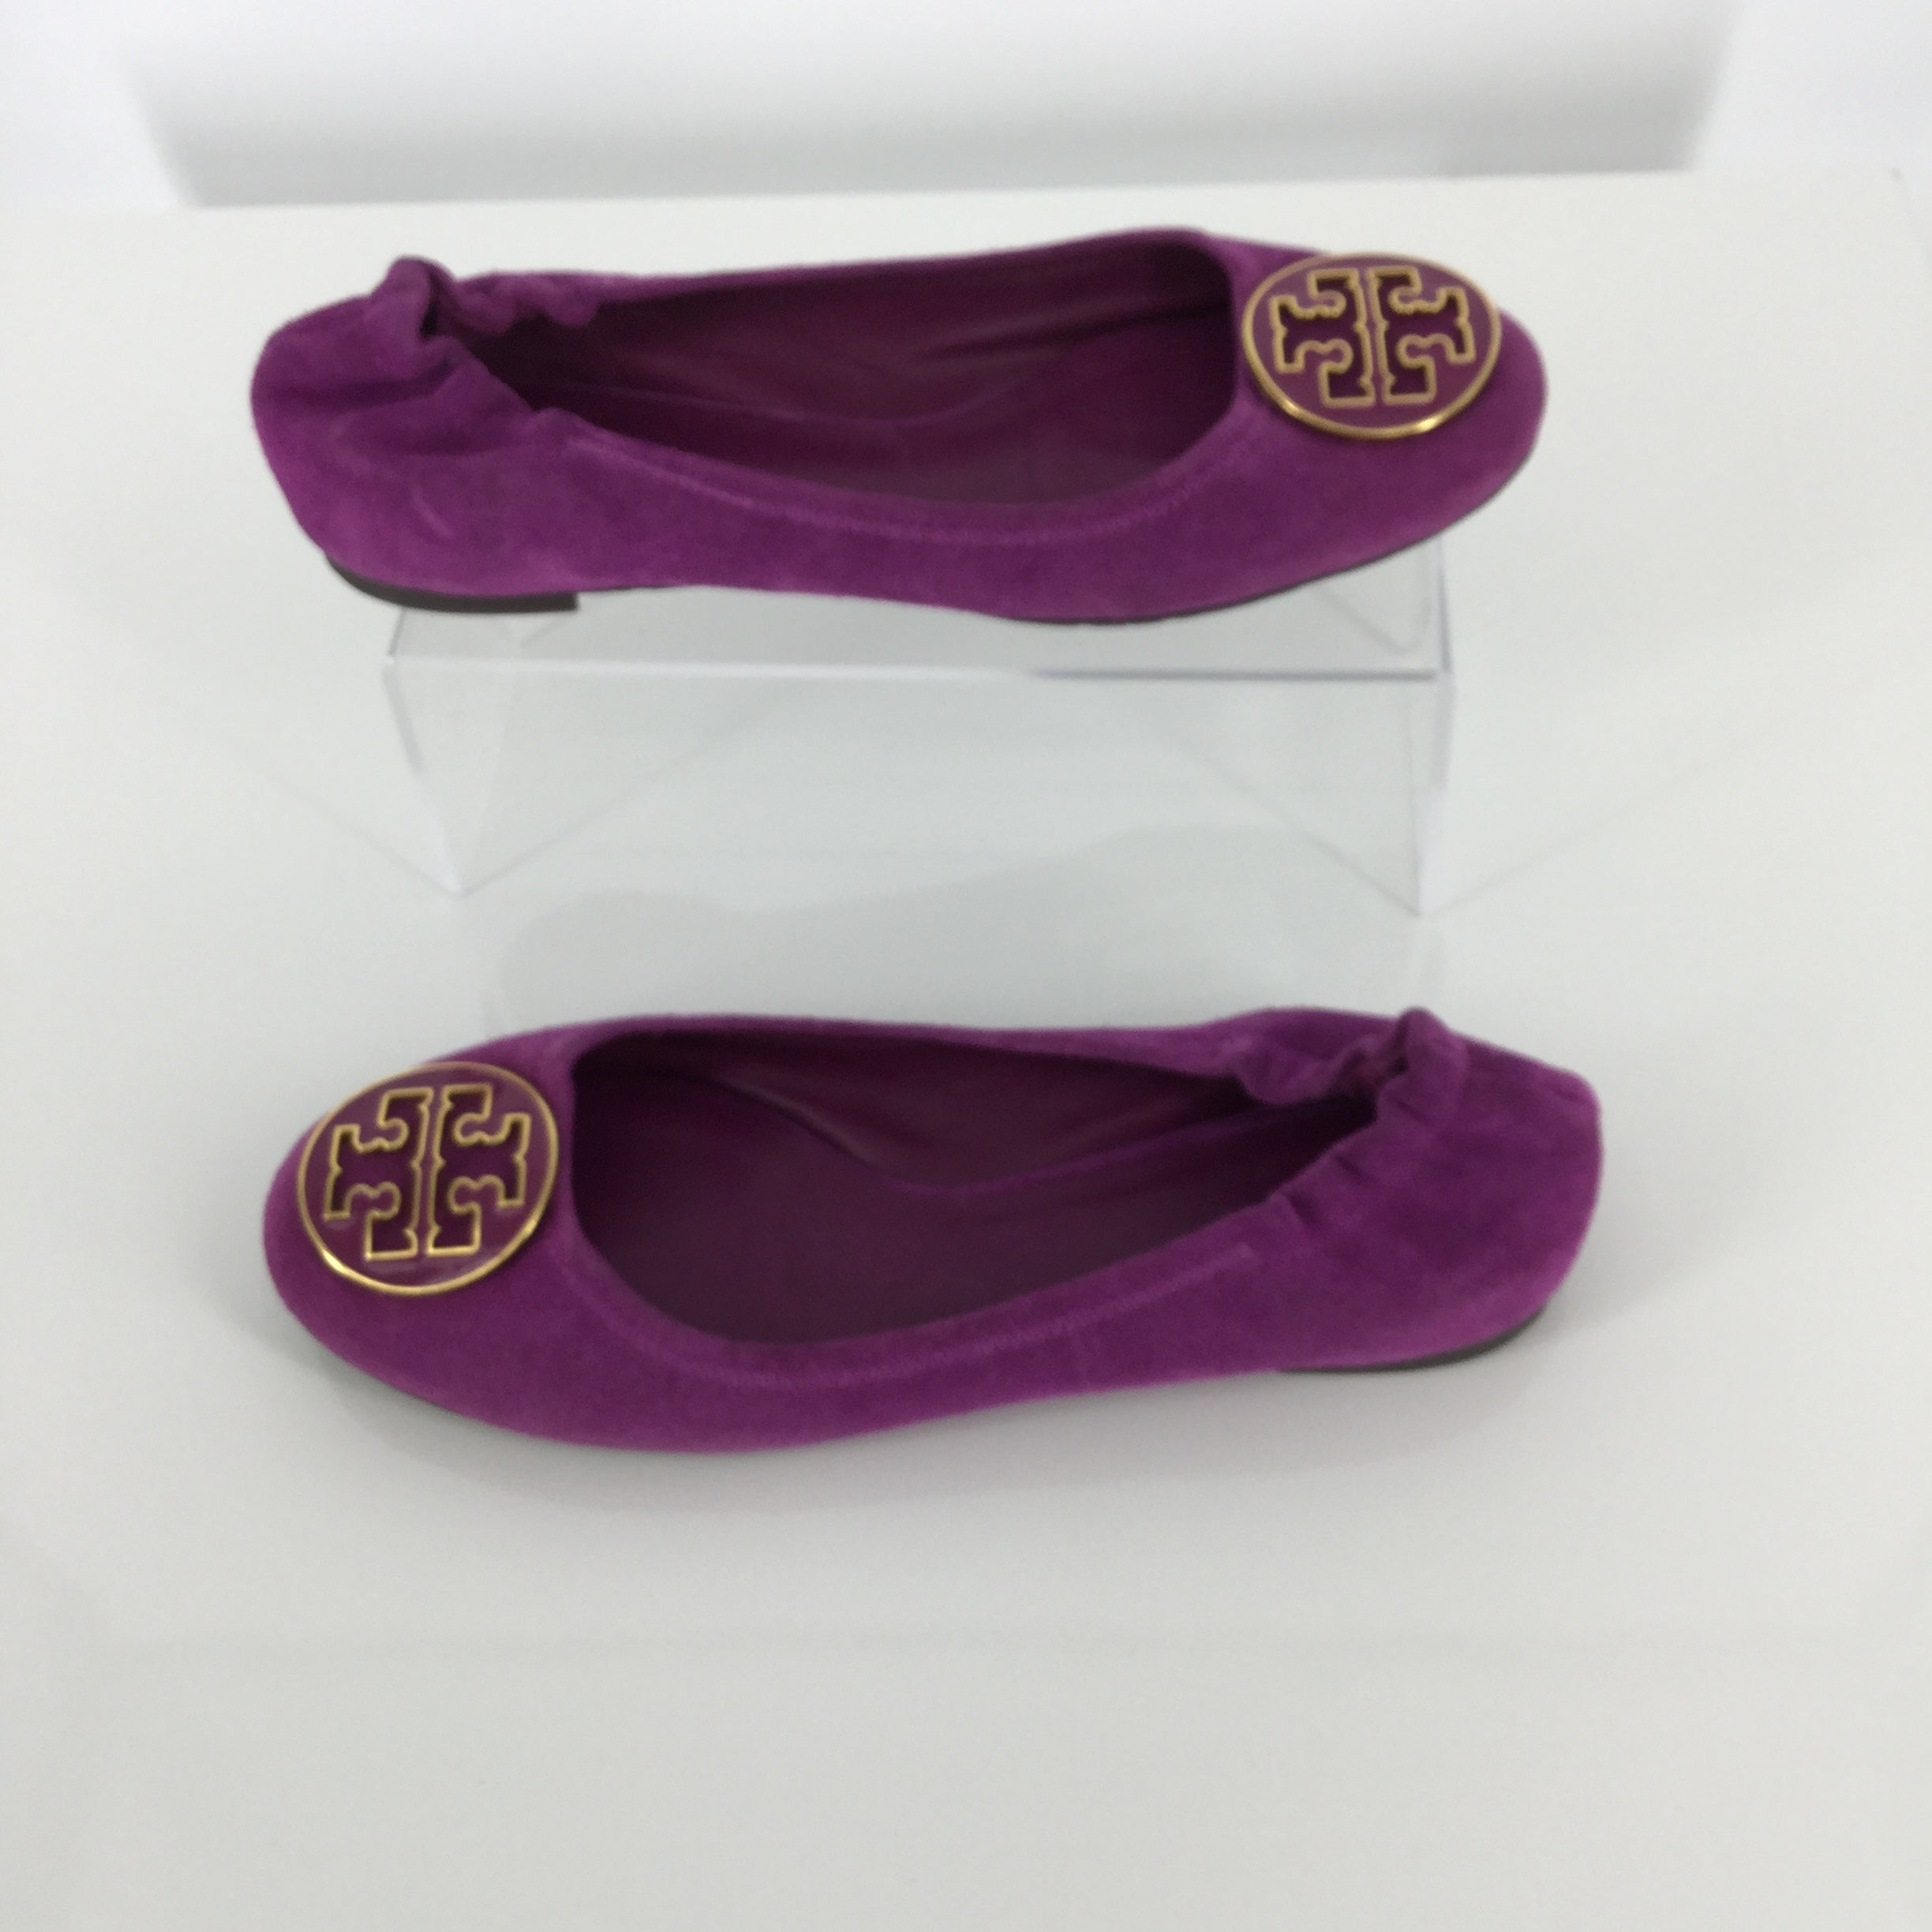 SHOES, - BEAUTIFUL, RICH FUCHSIA COLORED TORY BURCH FLATS WITH ICONIC TB MEDALLION. ELASTIC BACK AND SLIGHTLY PADDED FOOT BED FOR COMFORT. THESE CUTE FLATS ARE IN LIKE NEW CONDITION AND WILL BE PERFECT FOR SPRING!